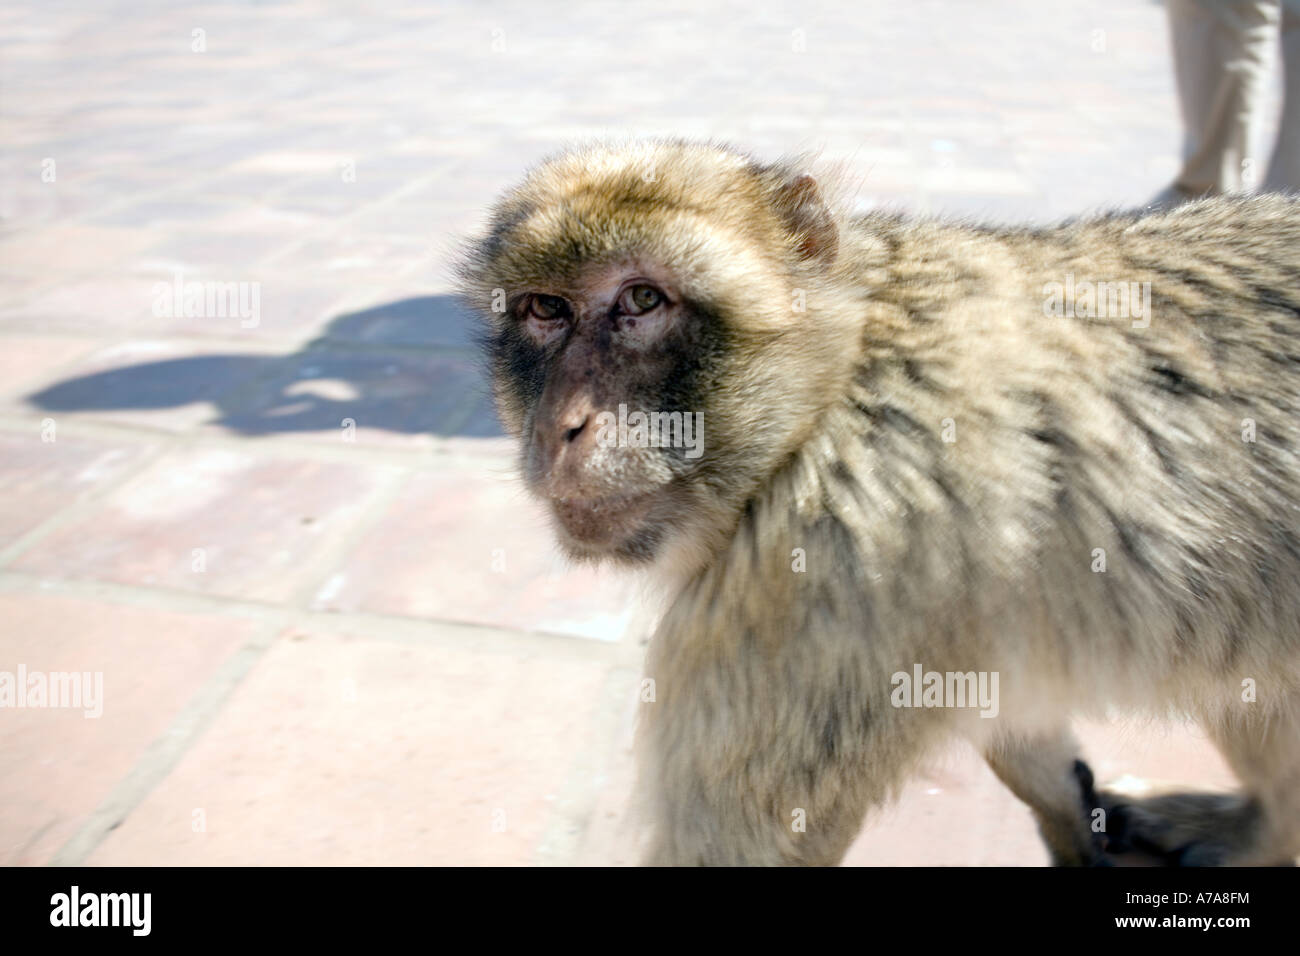 Gibraltar ape with cheeky face, Gibraltar, Europe, - Stock Image